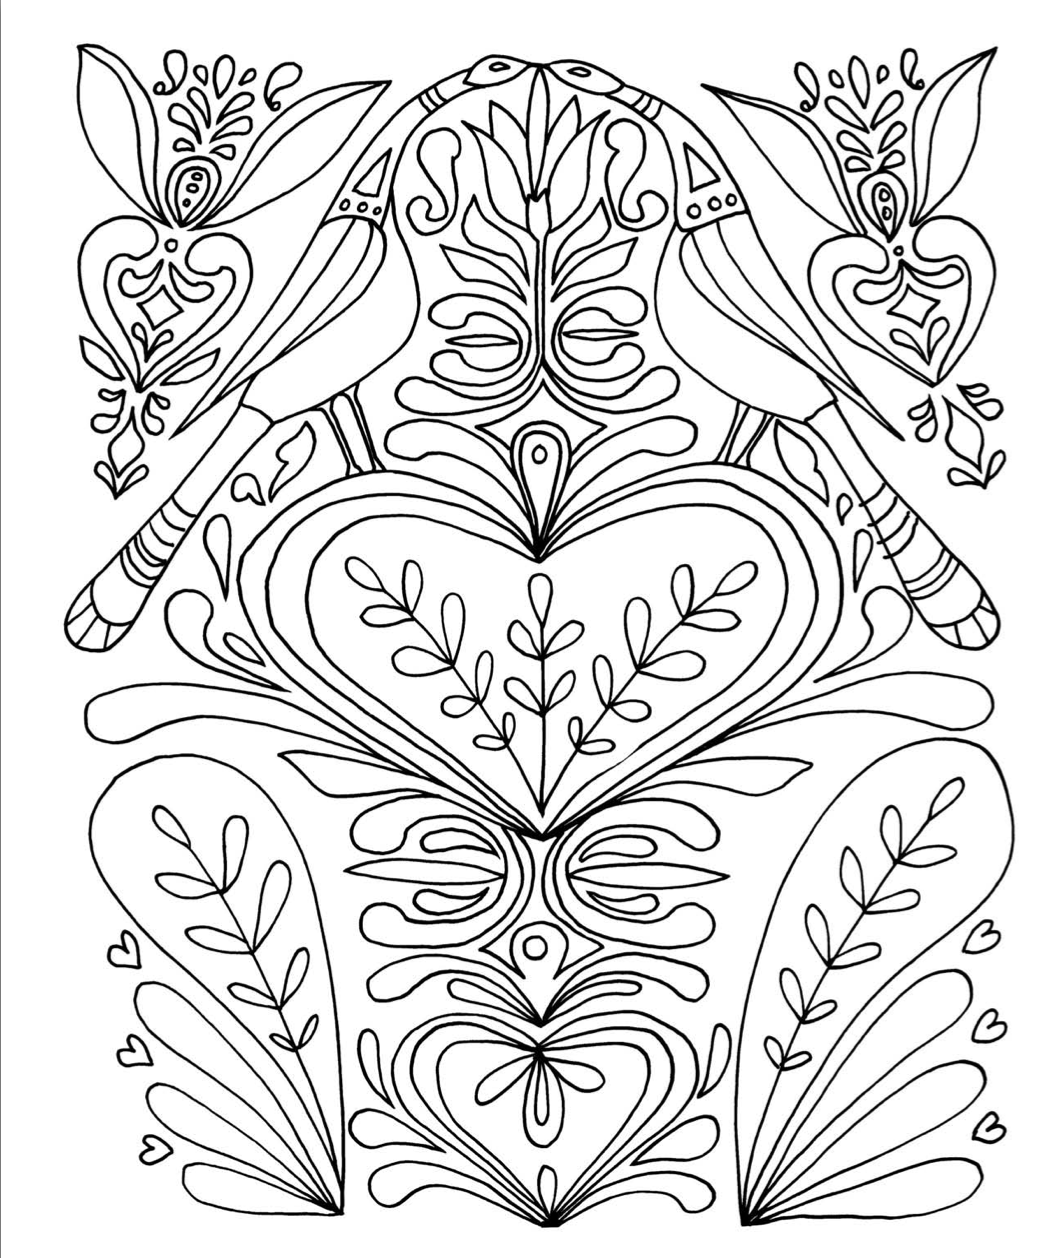 Coloring book activity pages - Creative Coloring Inspirations Art Activity Pages To Relax And Enjoy Pesquisa Google